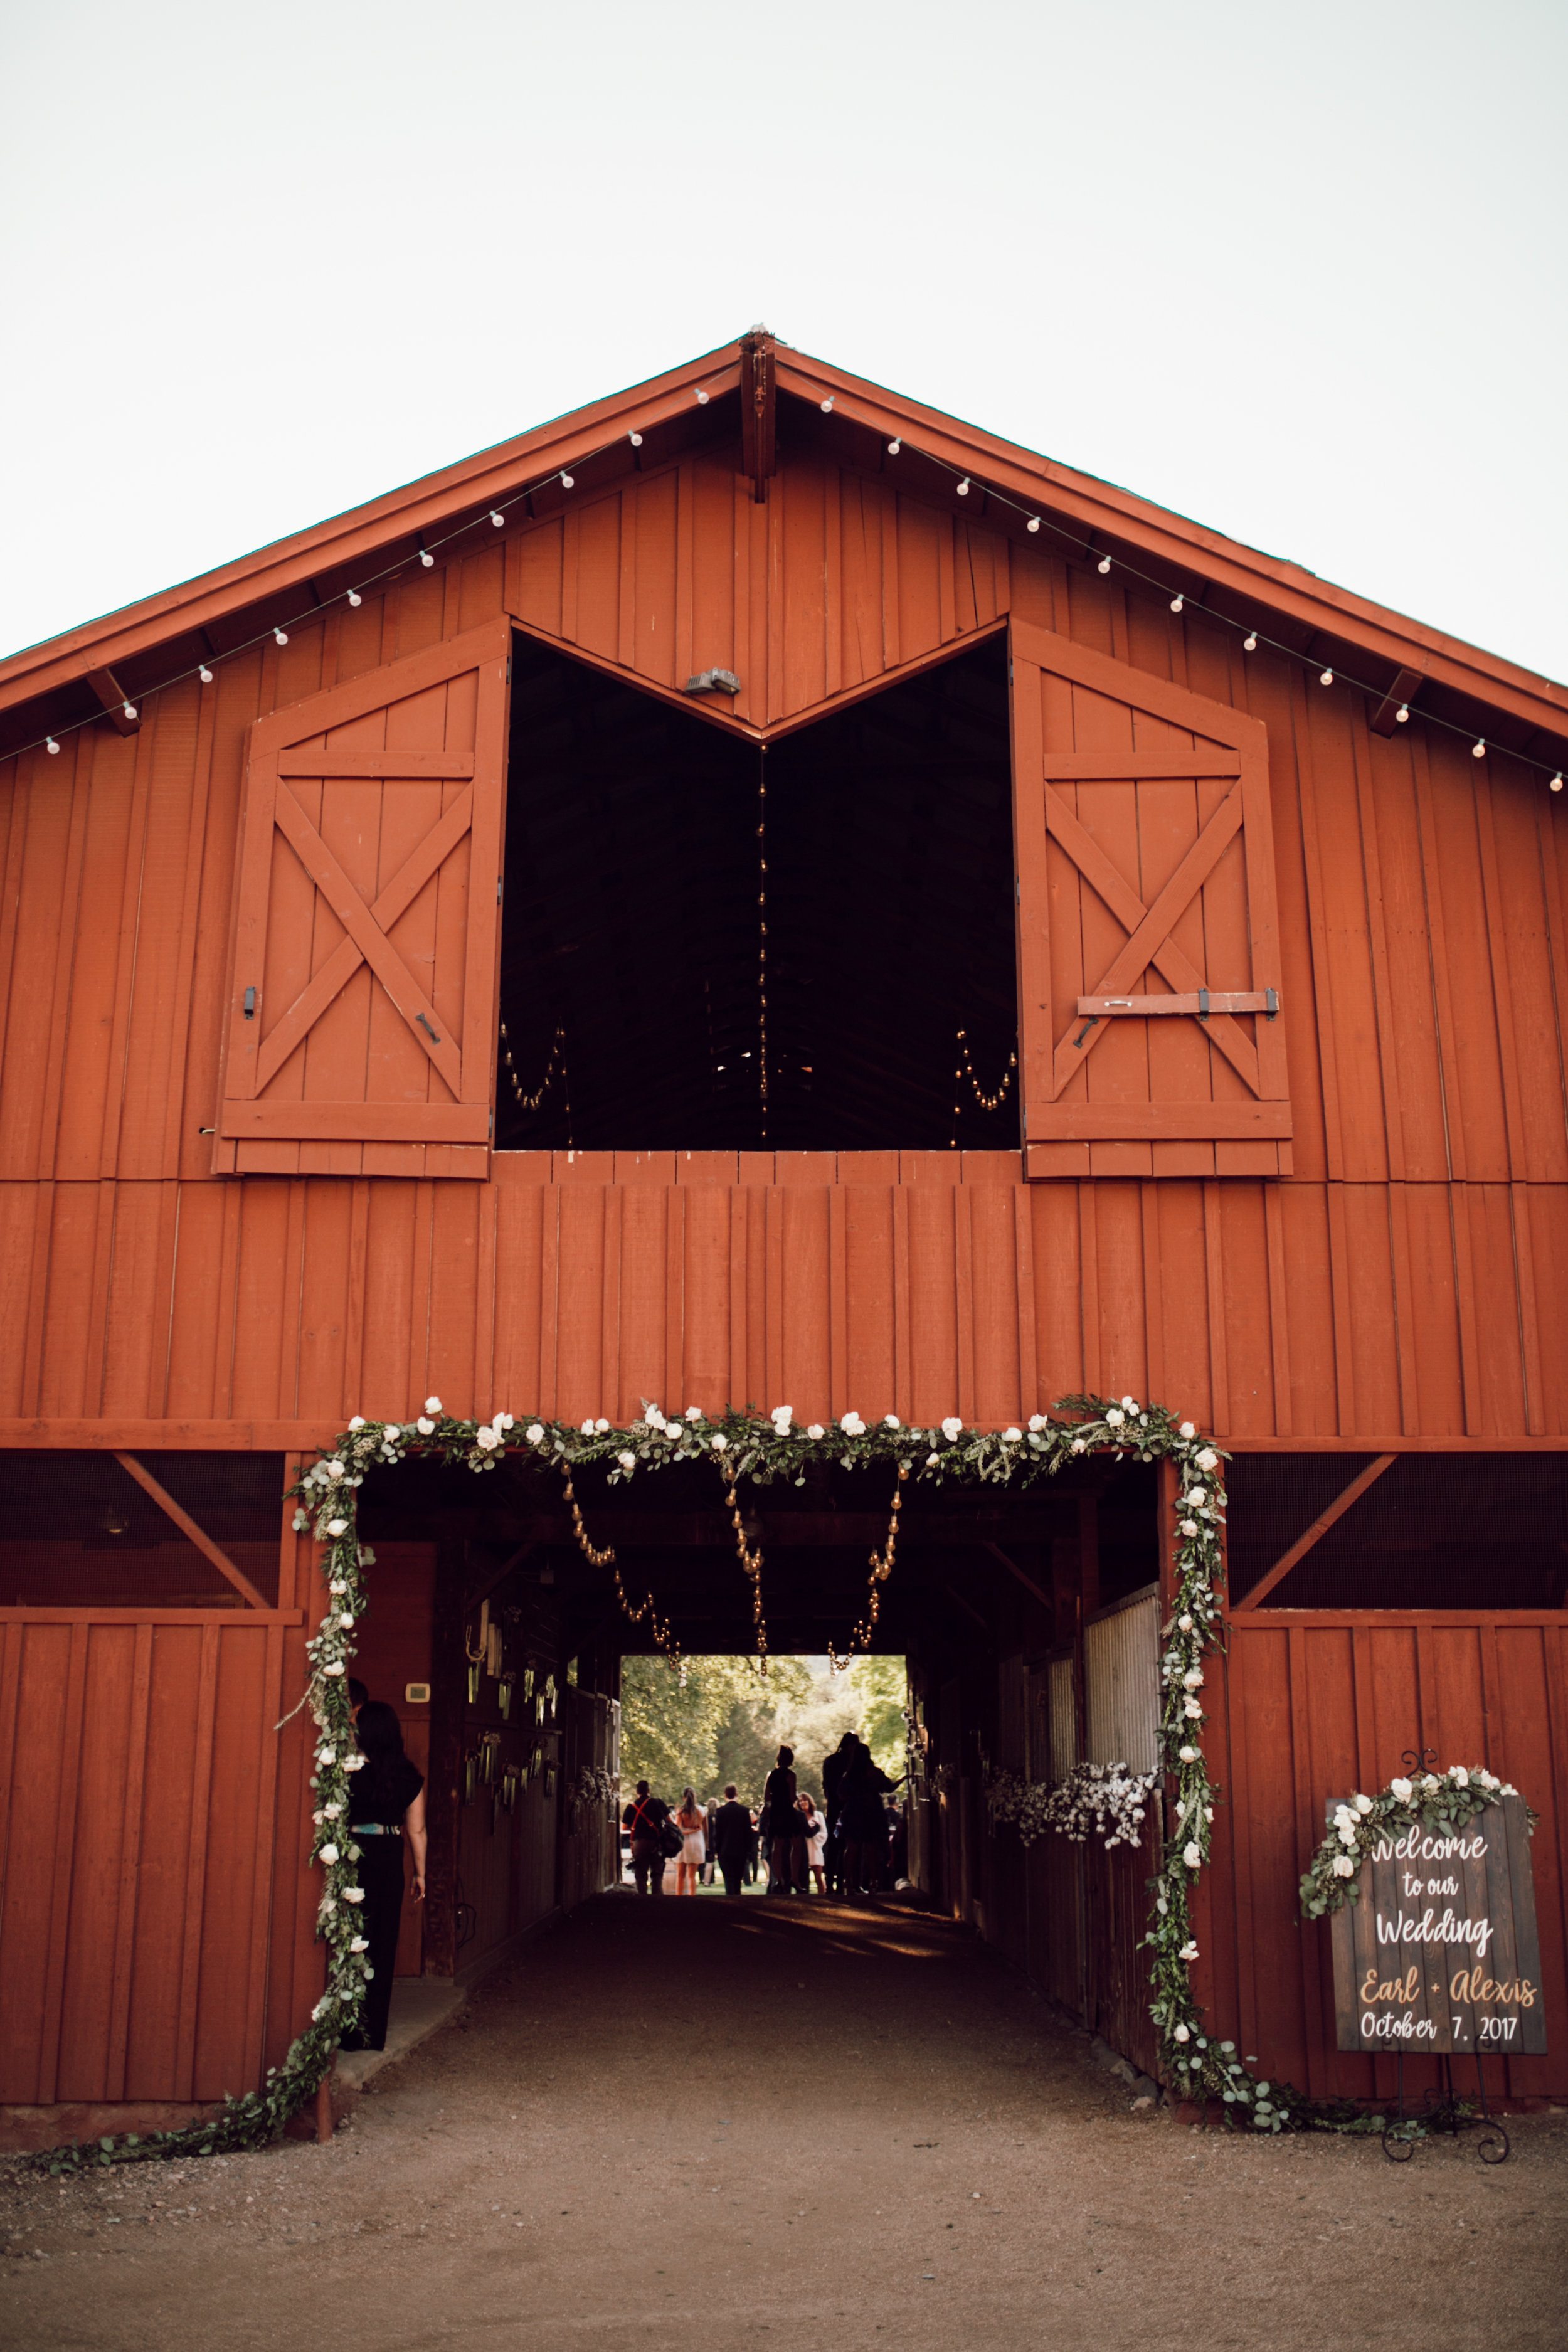 DA Ranch Fall Wedding - Barn Decor